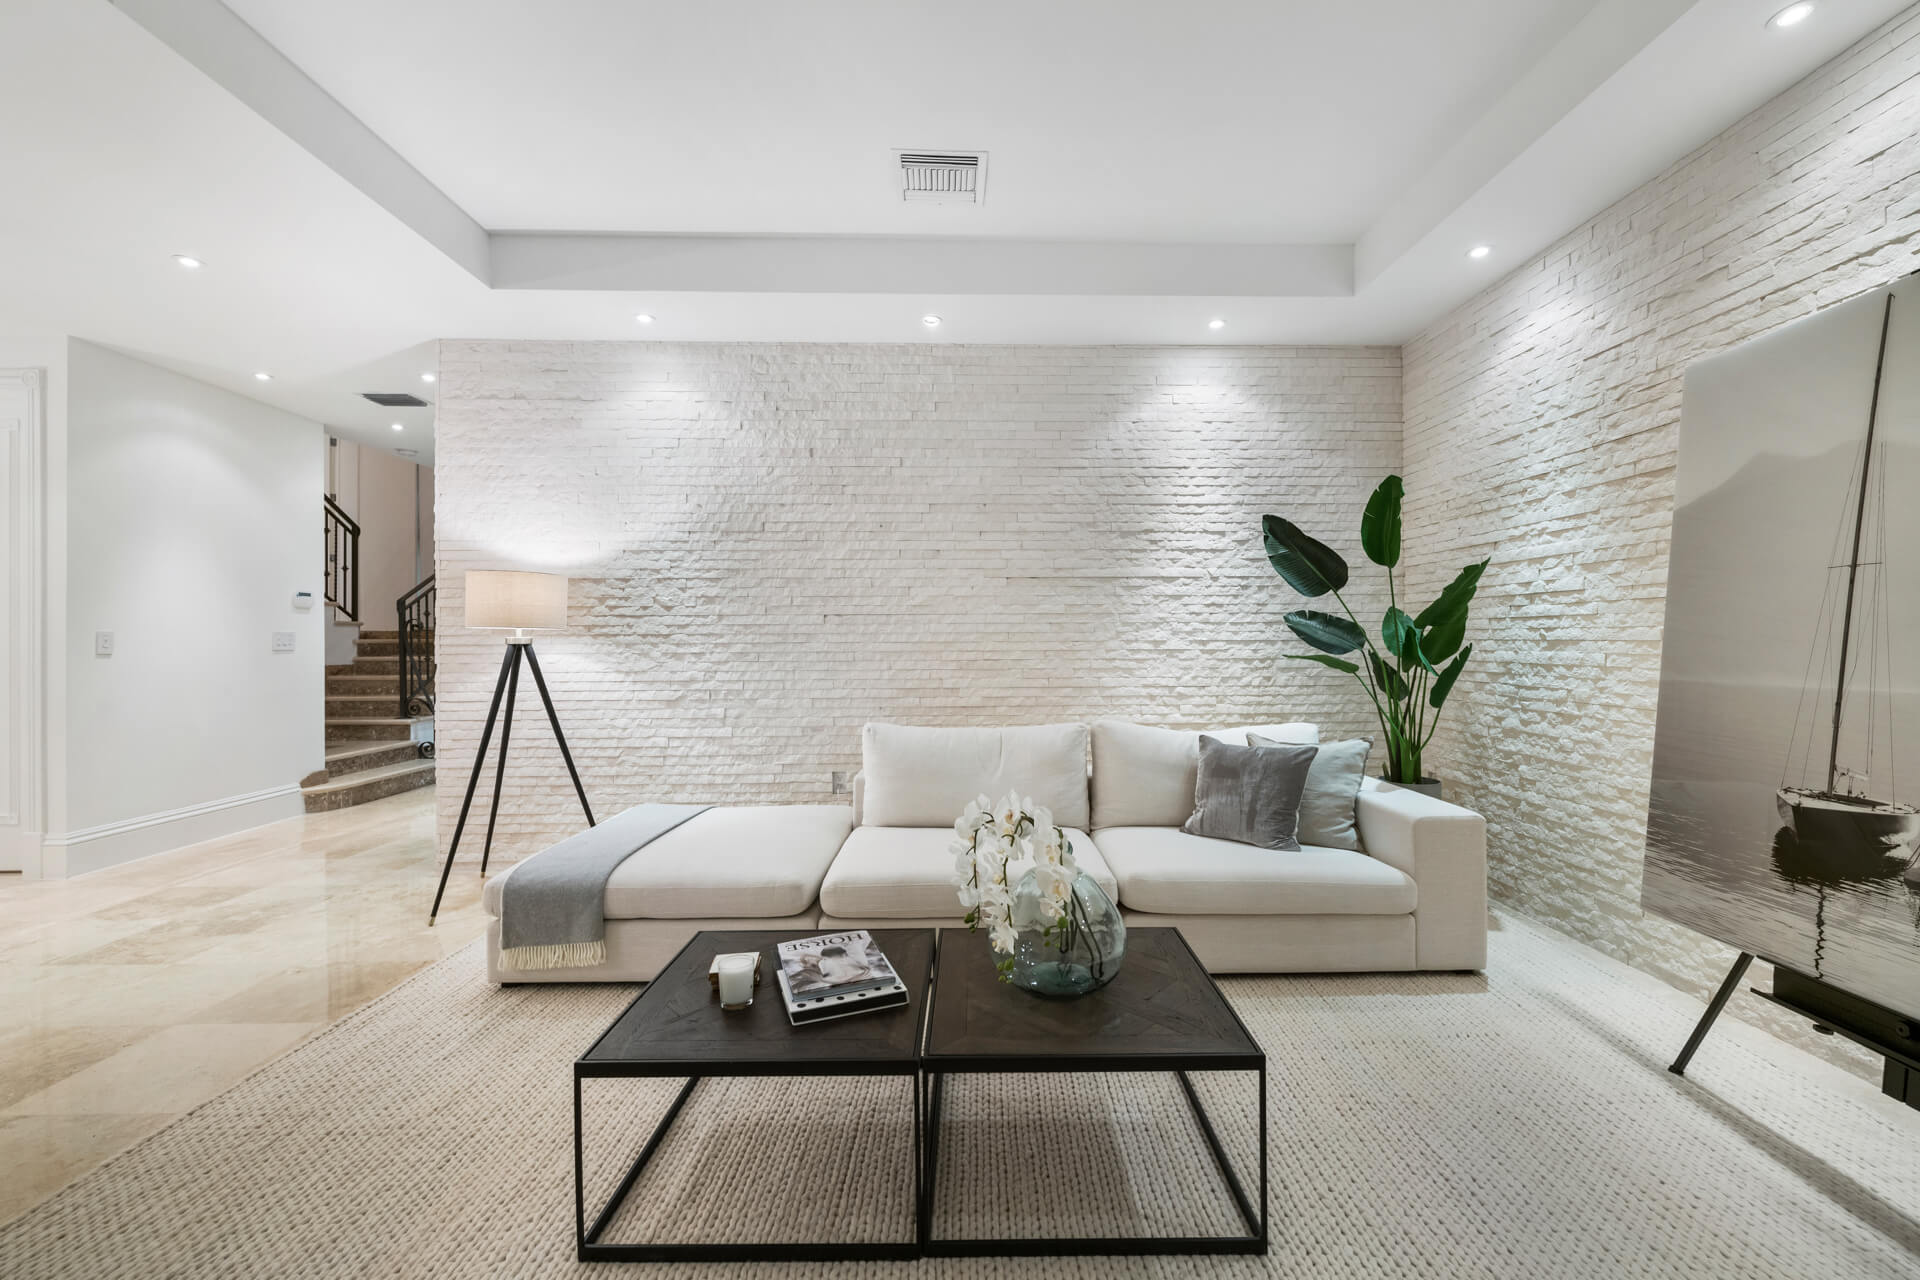 Home staging companies in Florida